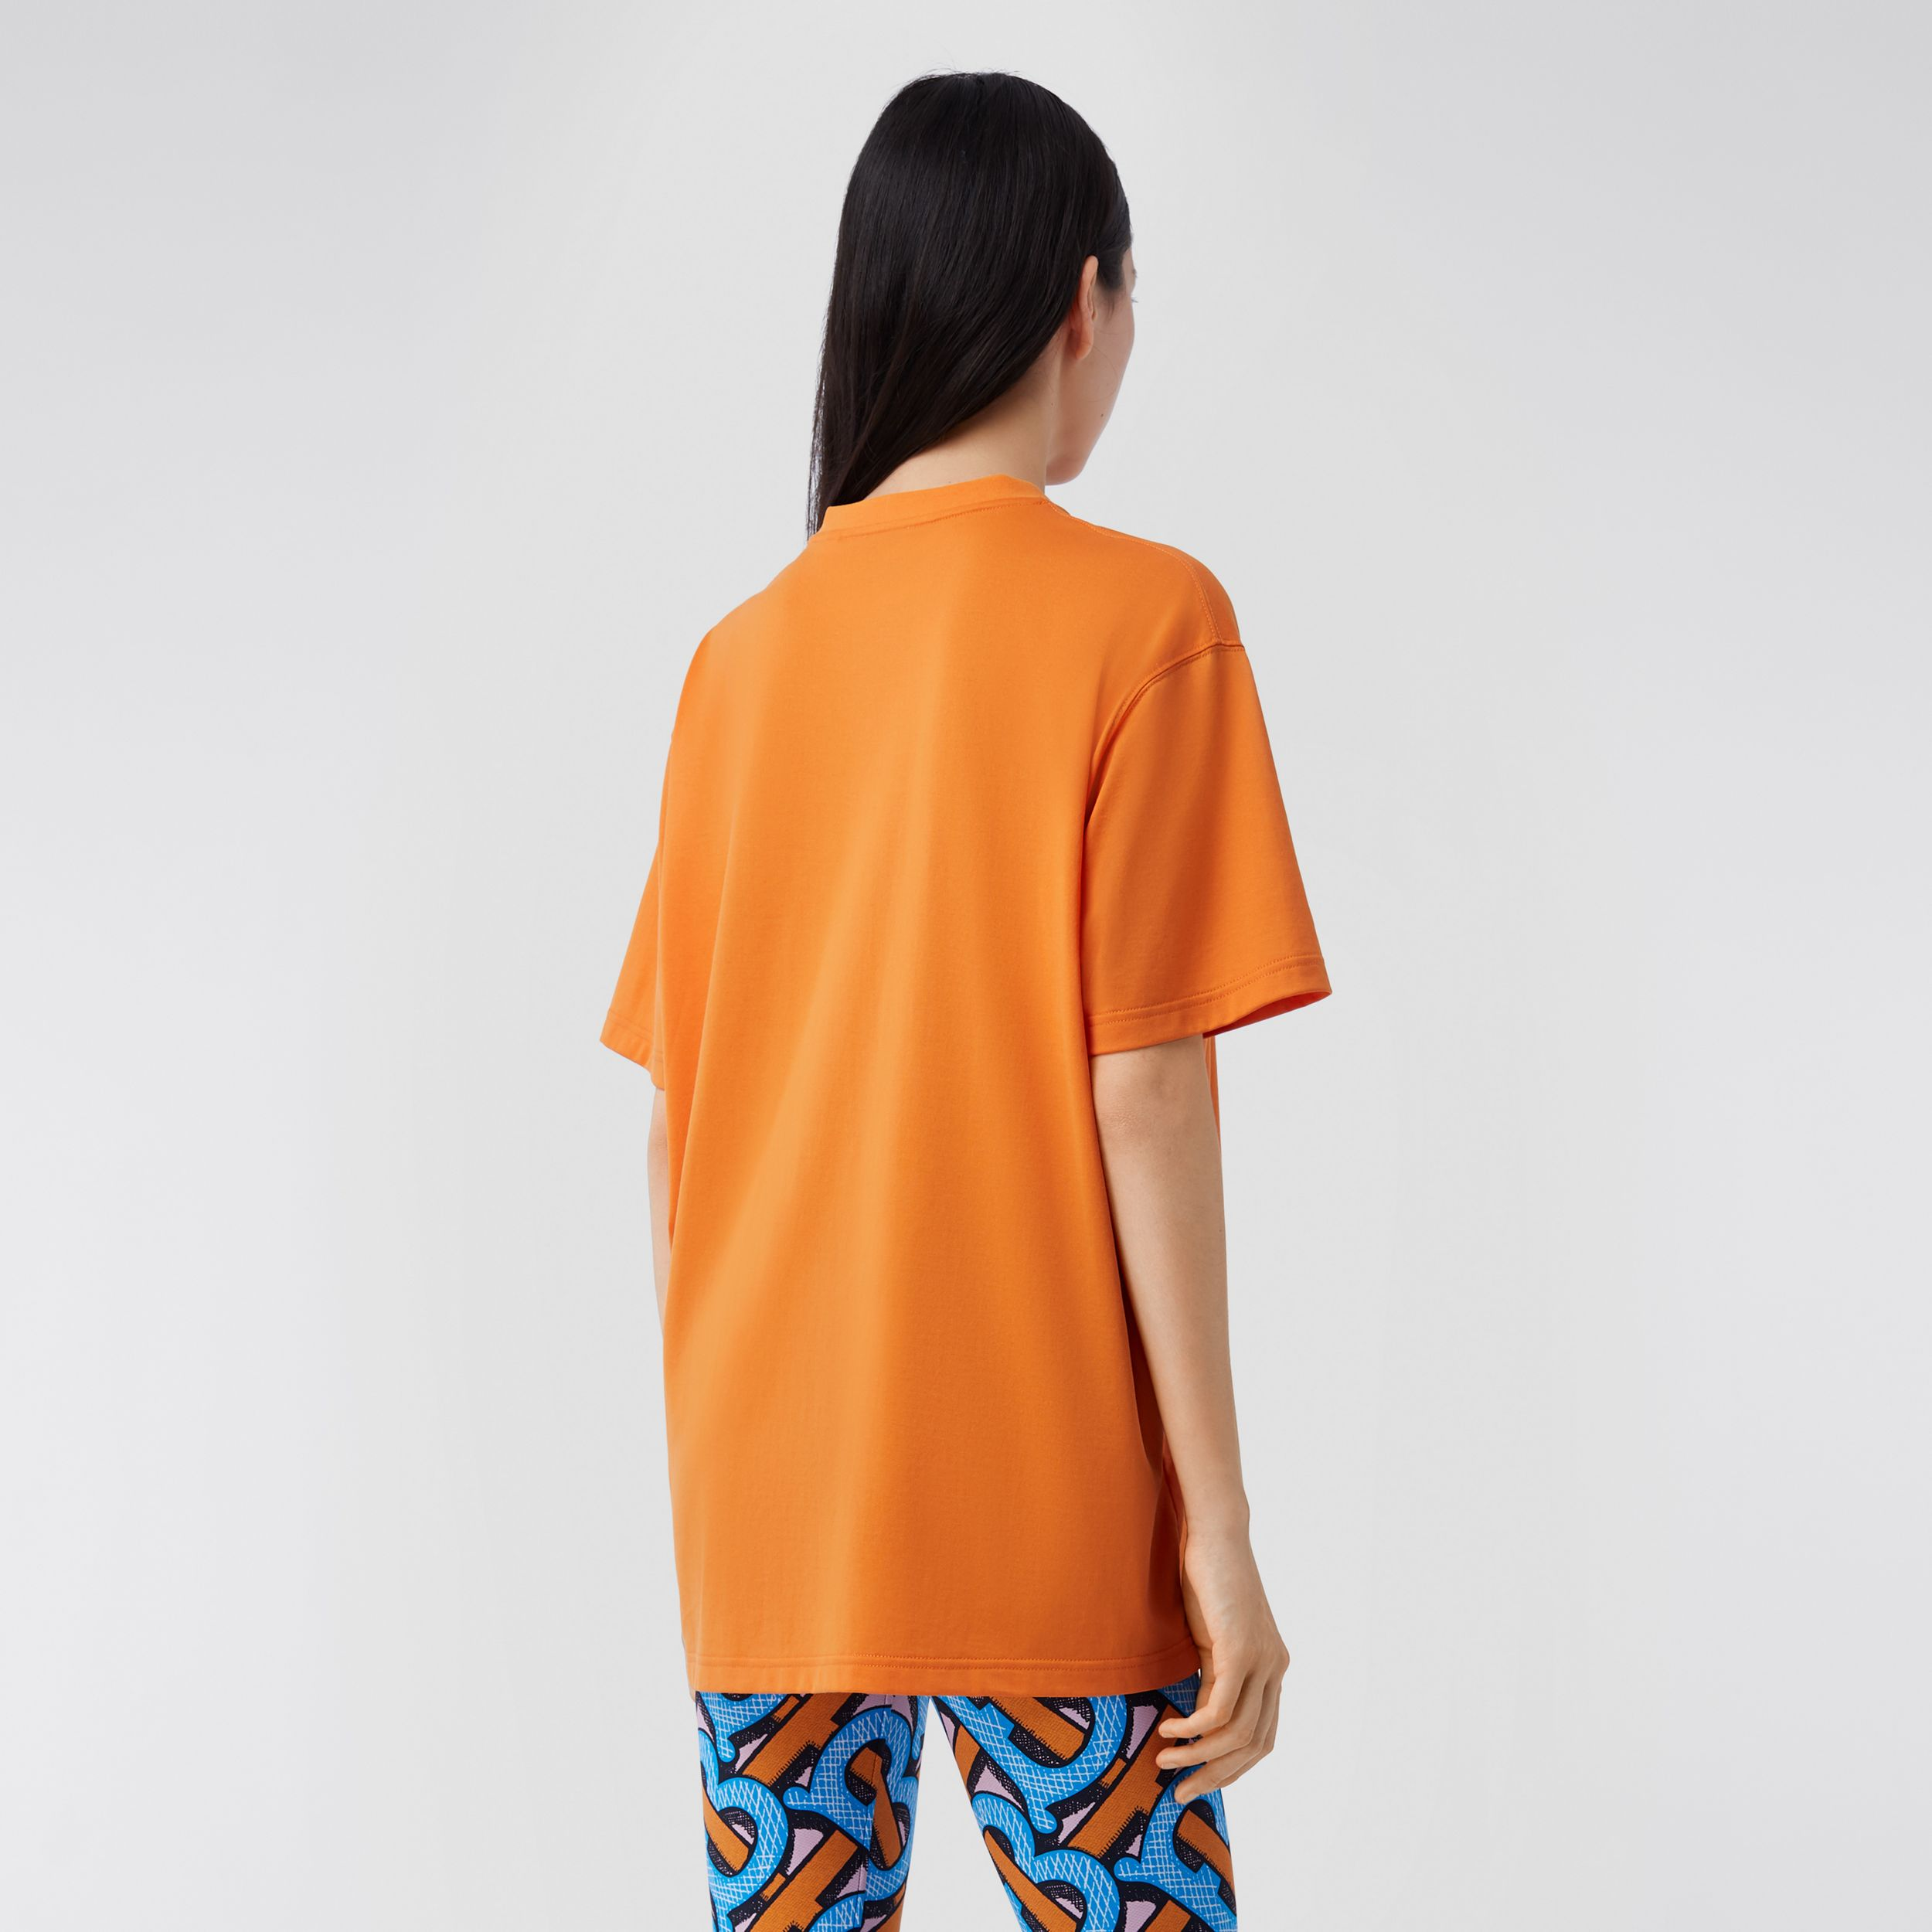 Monogram Motif Cotton T-shirt – Unisex in Bright Orange | Burberry Hong Kong S.A.R. - 3